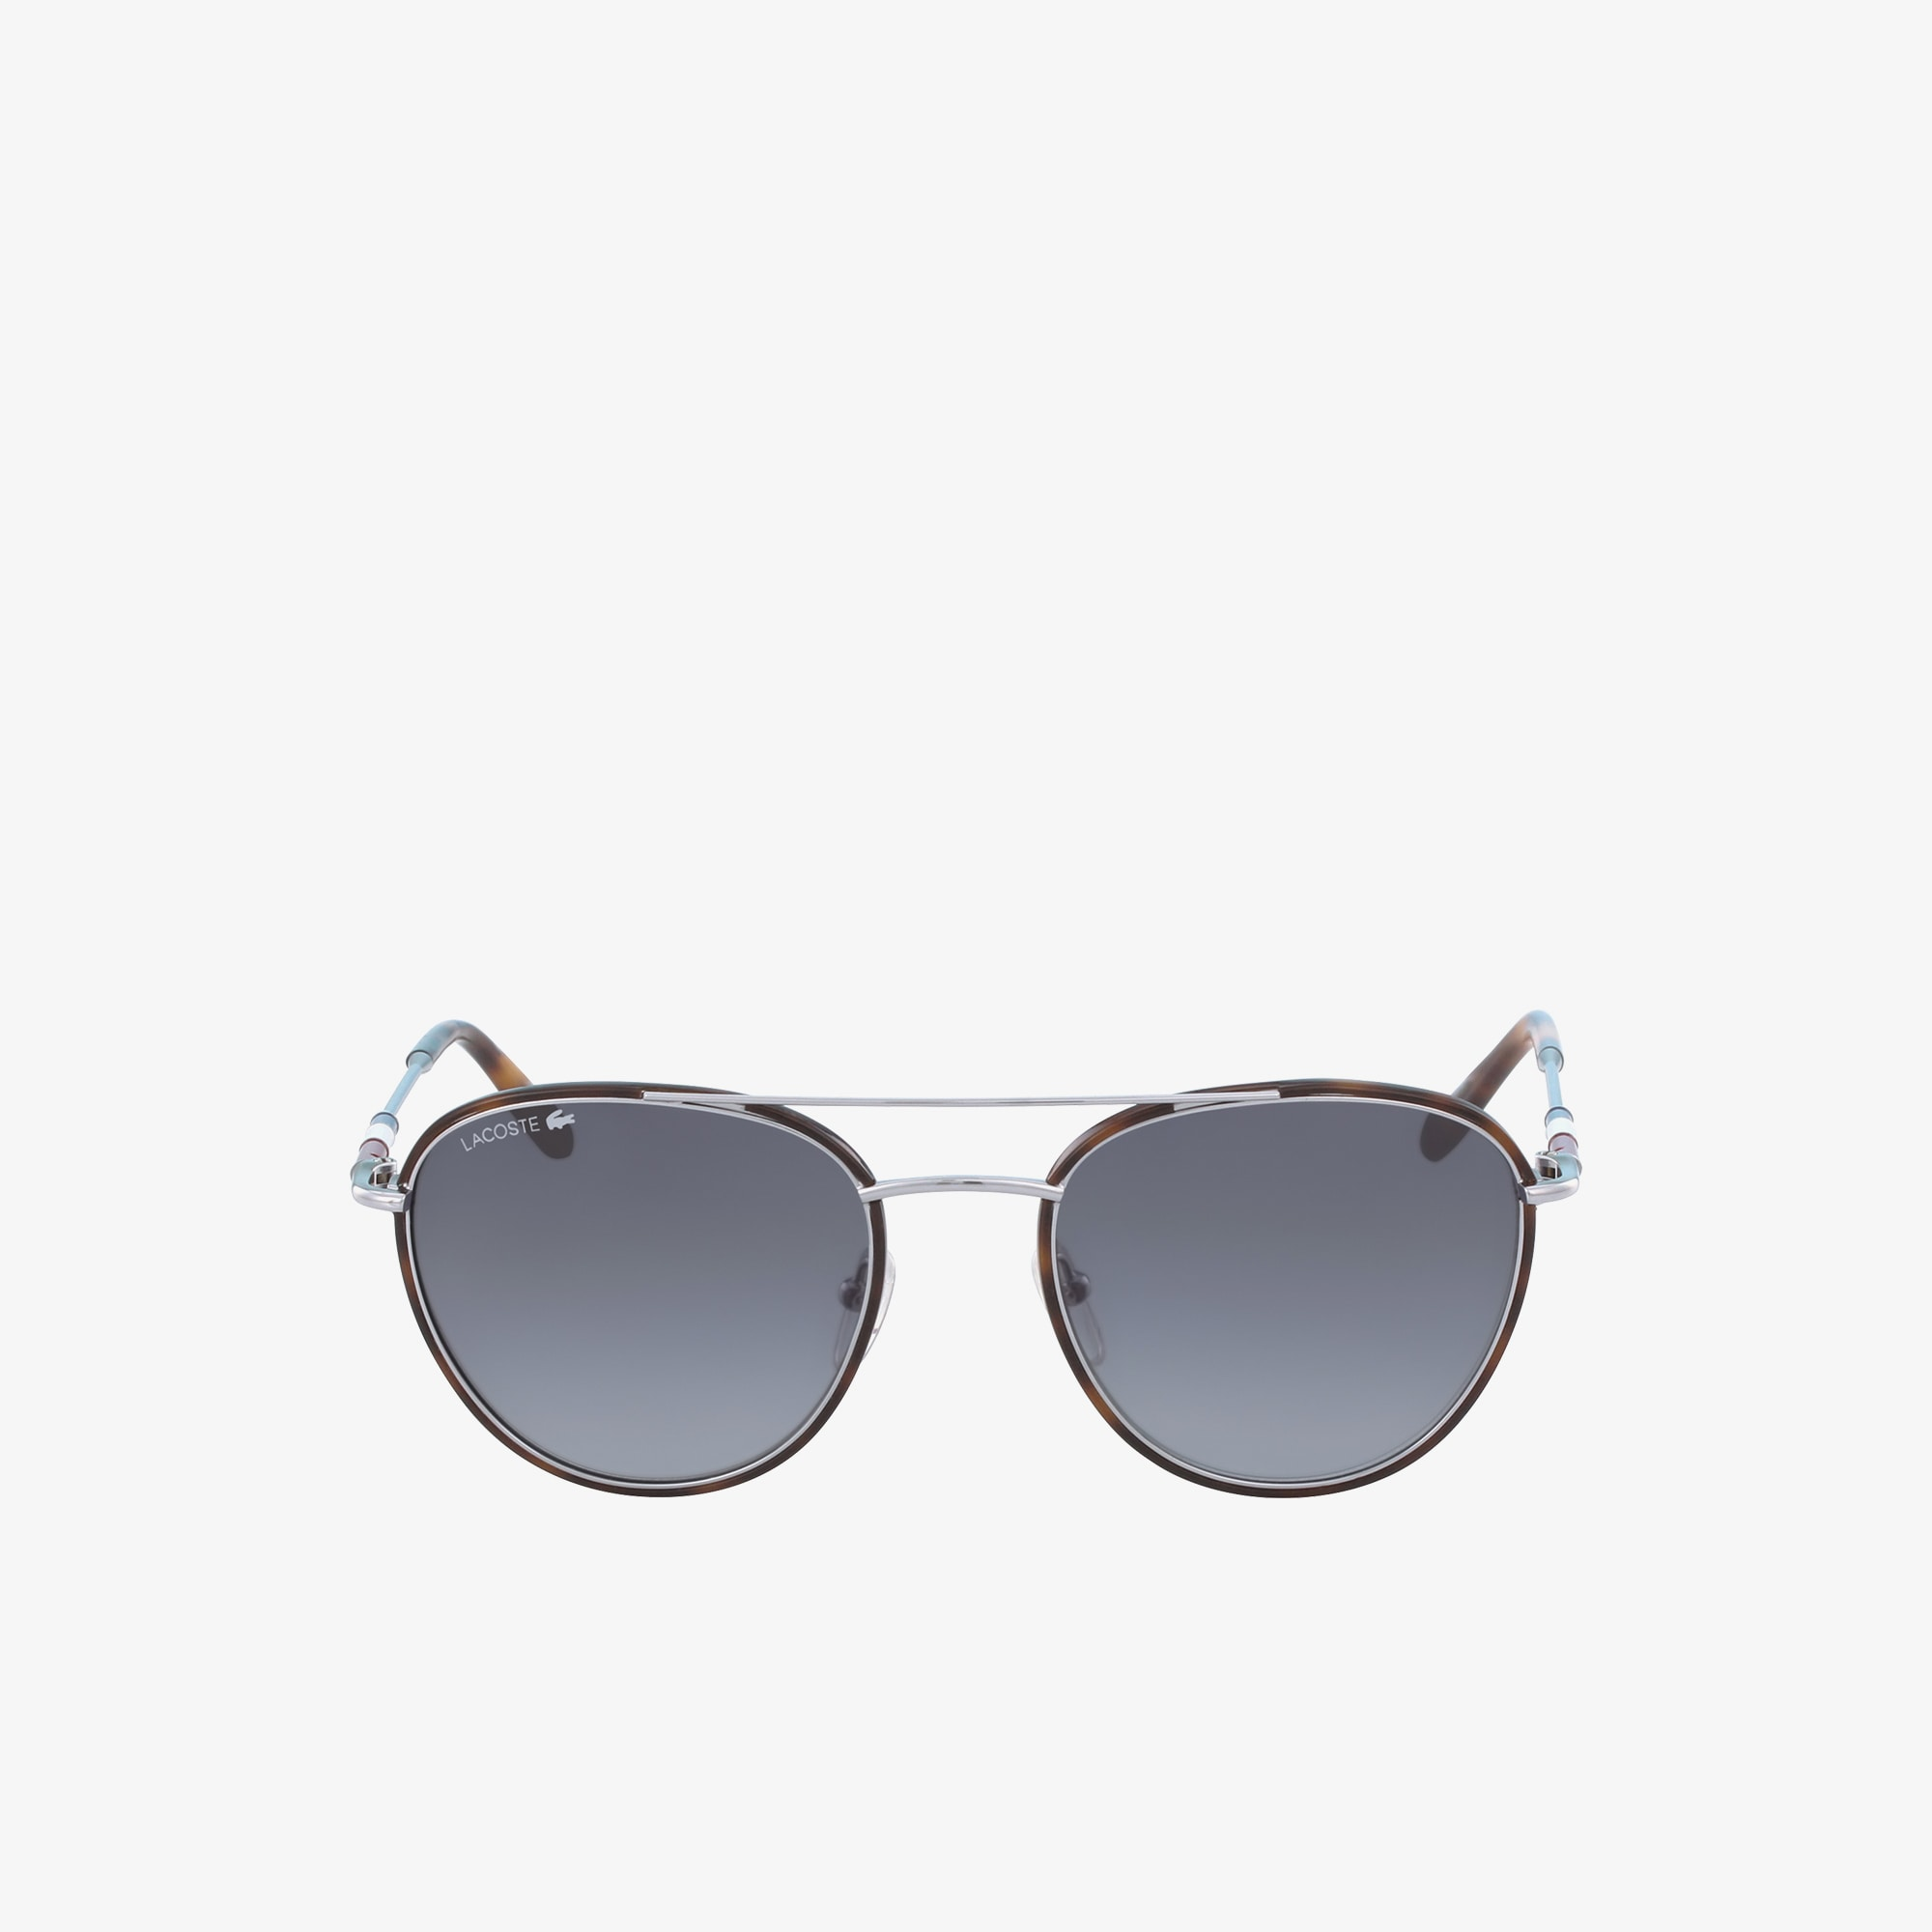 Heritage Sunglasses in Metal Novak Djokovic Edition